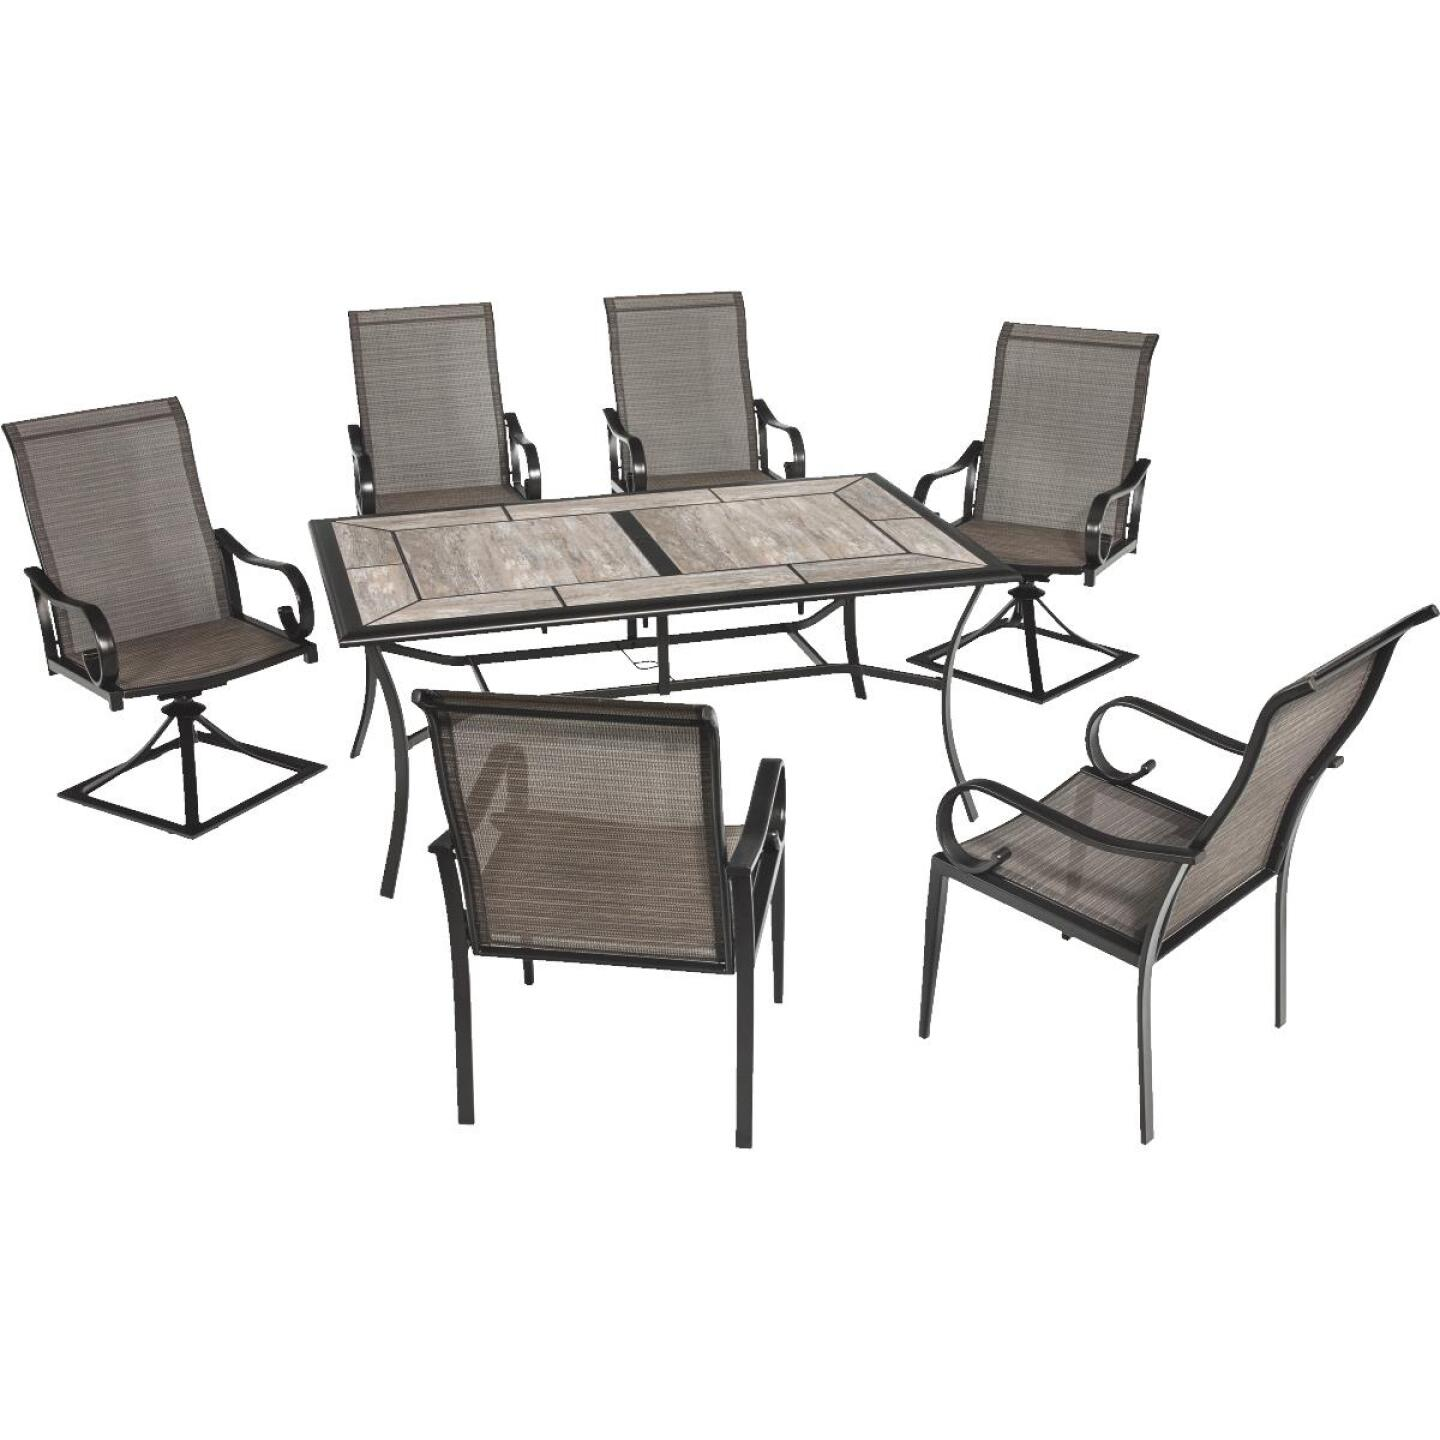 Outdoor Expressions Berkshire 7-Piece Dining Set Image 242